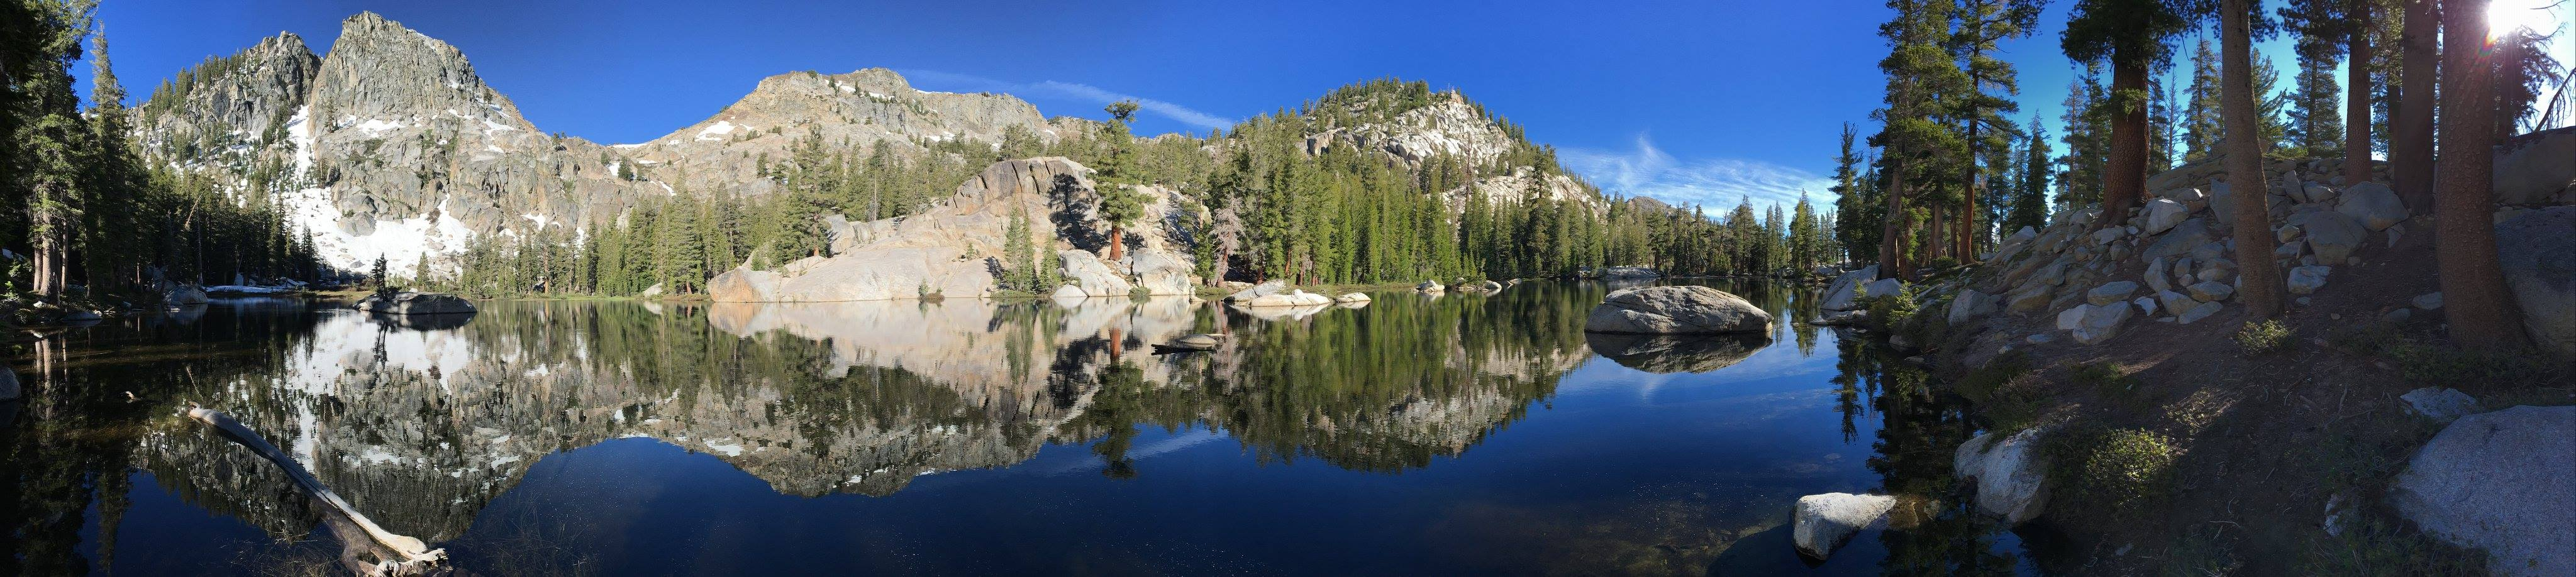 Lake George in Sierra National Forest